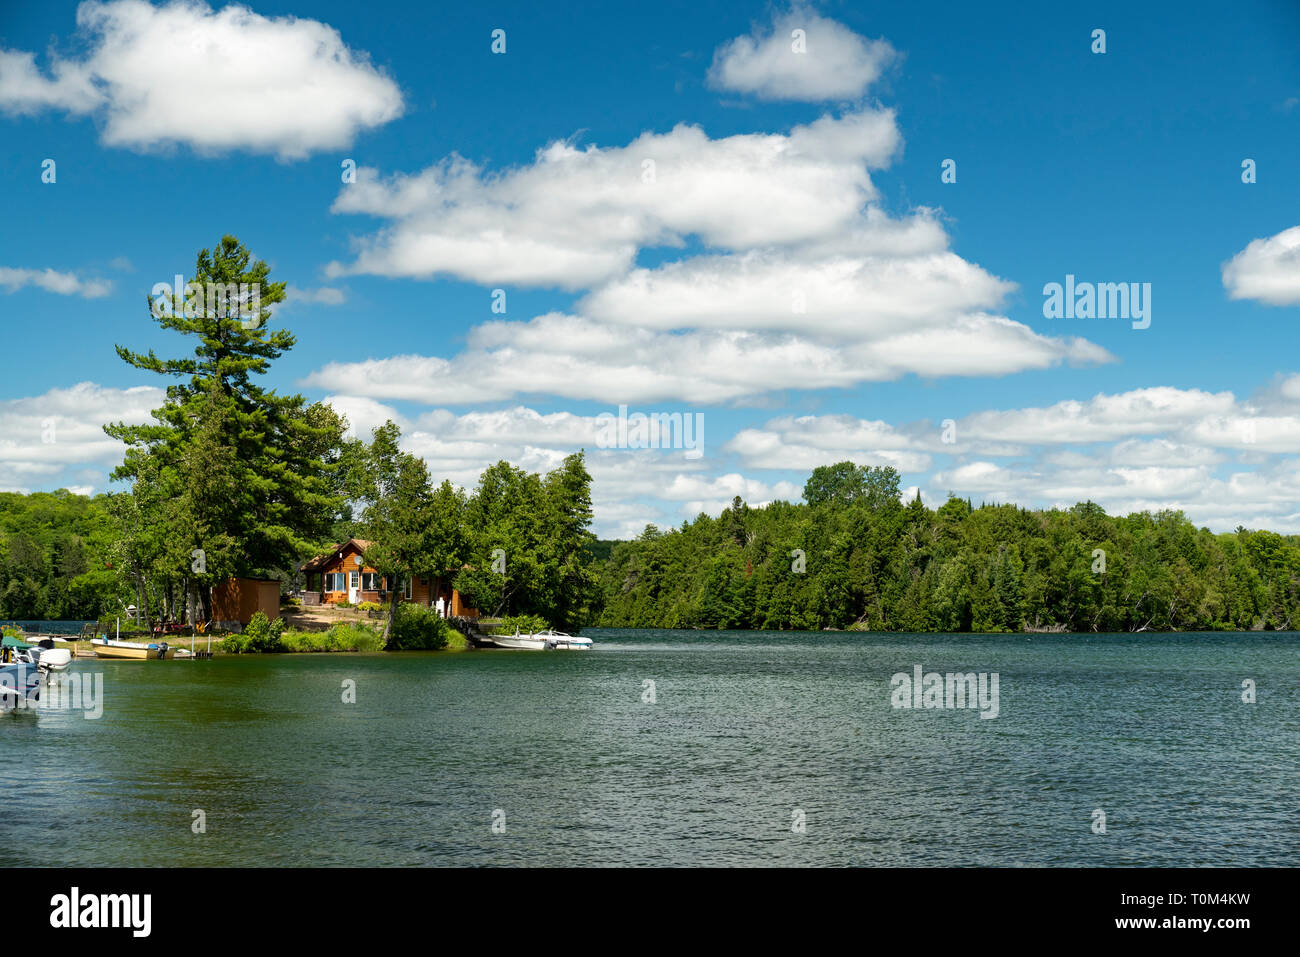 Cabin and docked motorboats on a lake in Ontario Canada's Cottage Country with clouds in a blue sky on a summer afternoon. Stock Photo